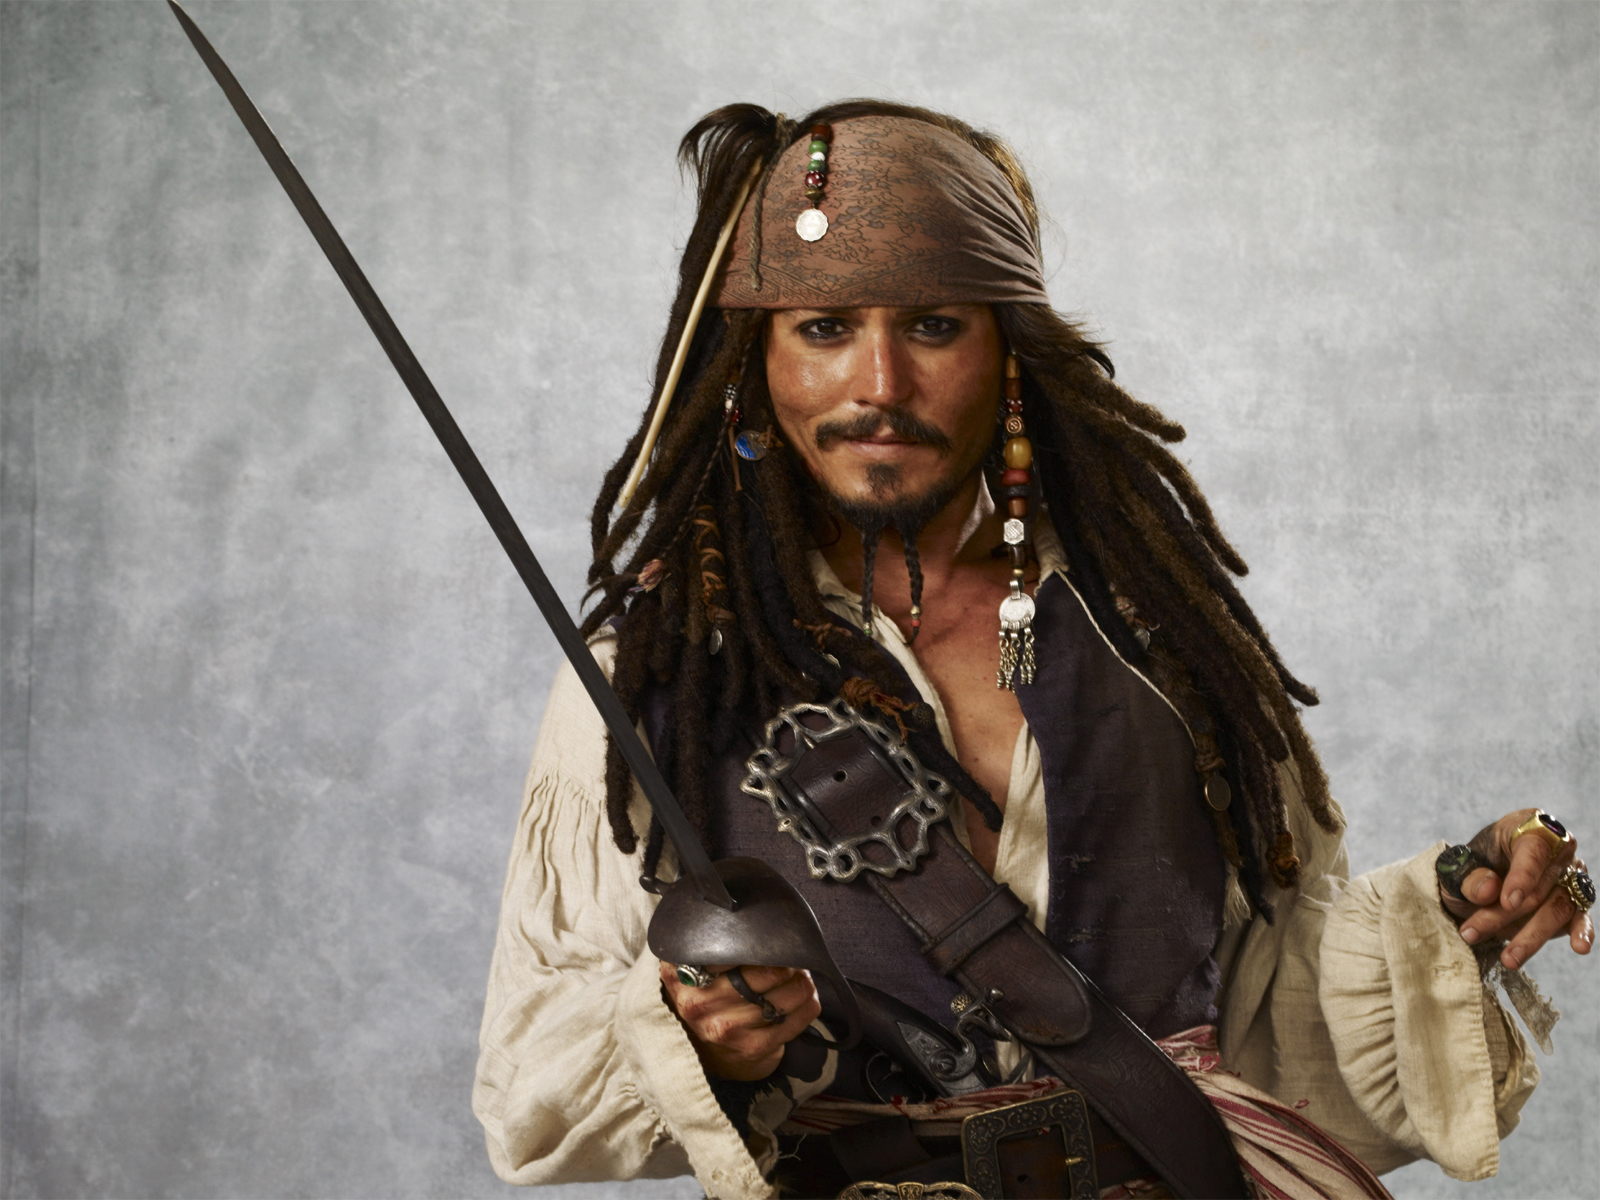 Pirates Of The Caribean Wallpaper: HQ Wallpapers Of Hollywood Superhit Movie PIRATES OF THE